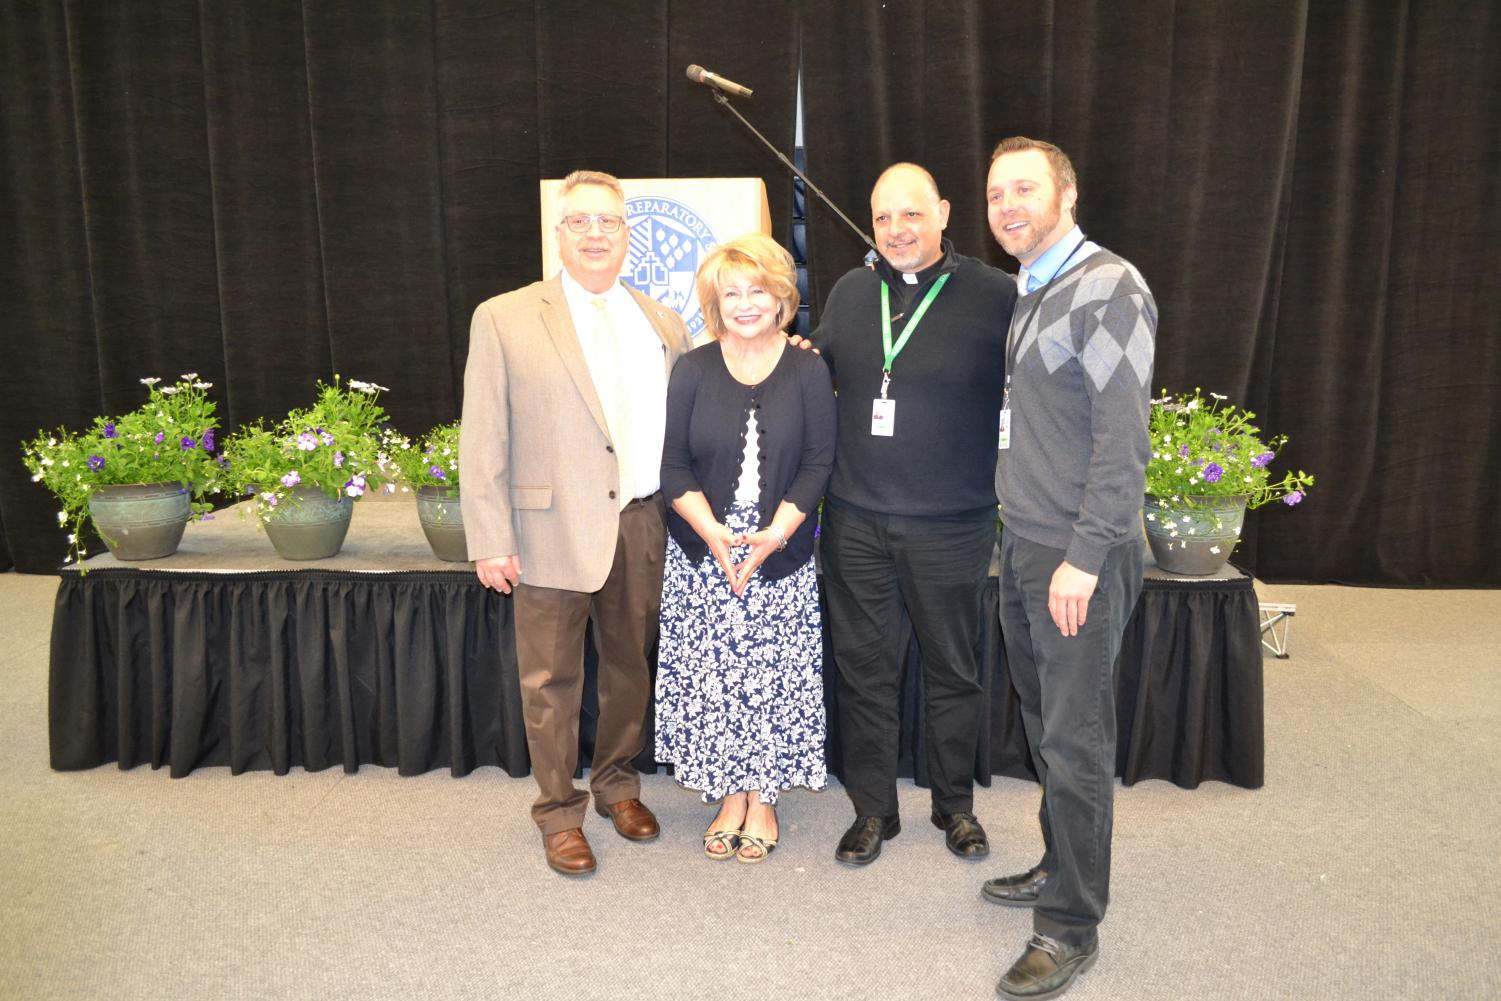 Jim Fish, Judy Torgerson, Fr. Tom Lamanna, S.J. and Erik Michels will be leaving at the end of the year. Not pictured: Kirsten Byers, Julie Campbell, Denise Diaz and Frank Lewis. Photo by Jeanne Hanigan